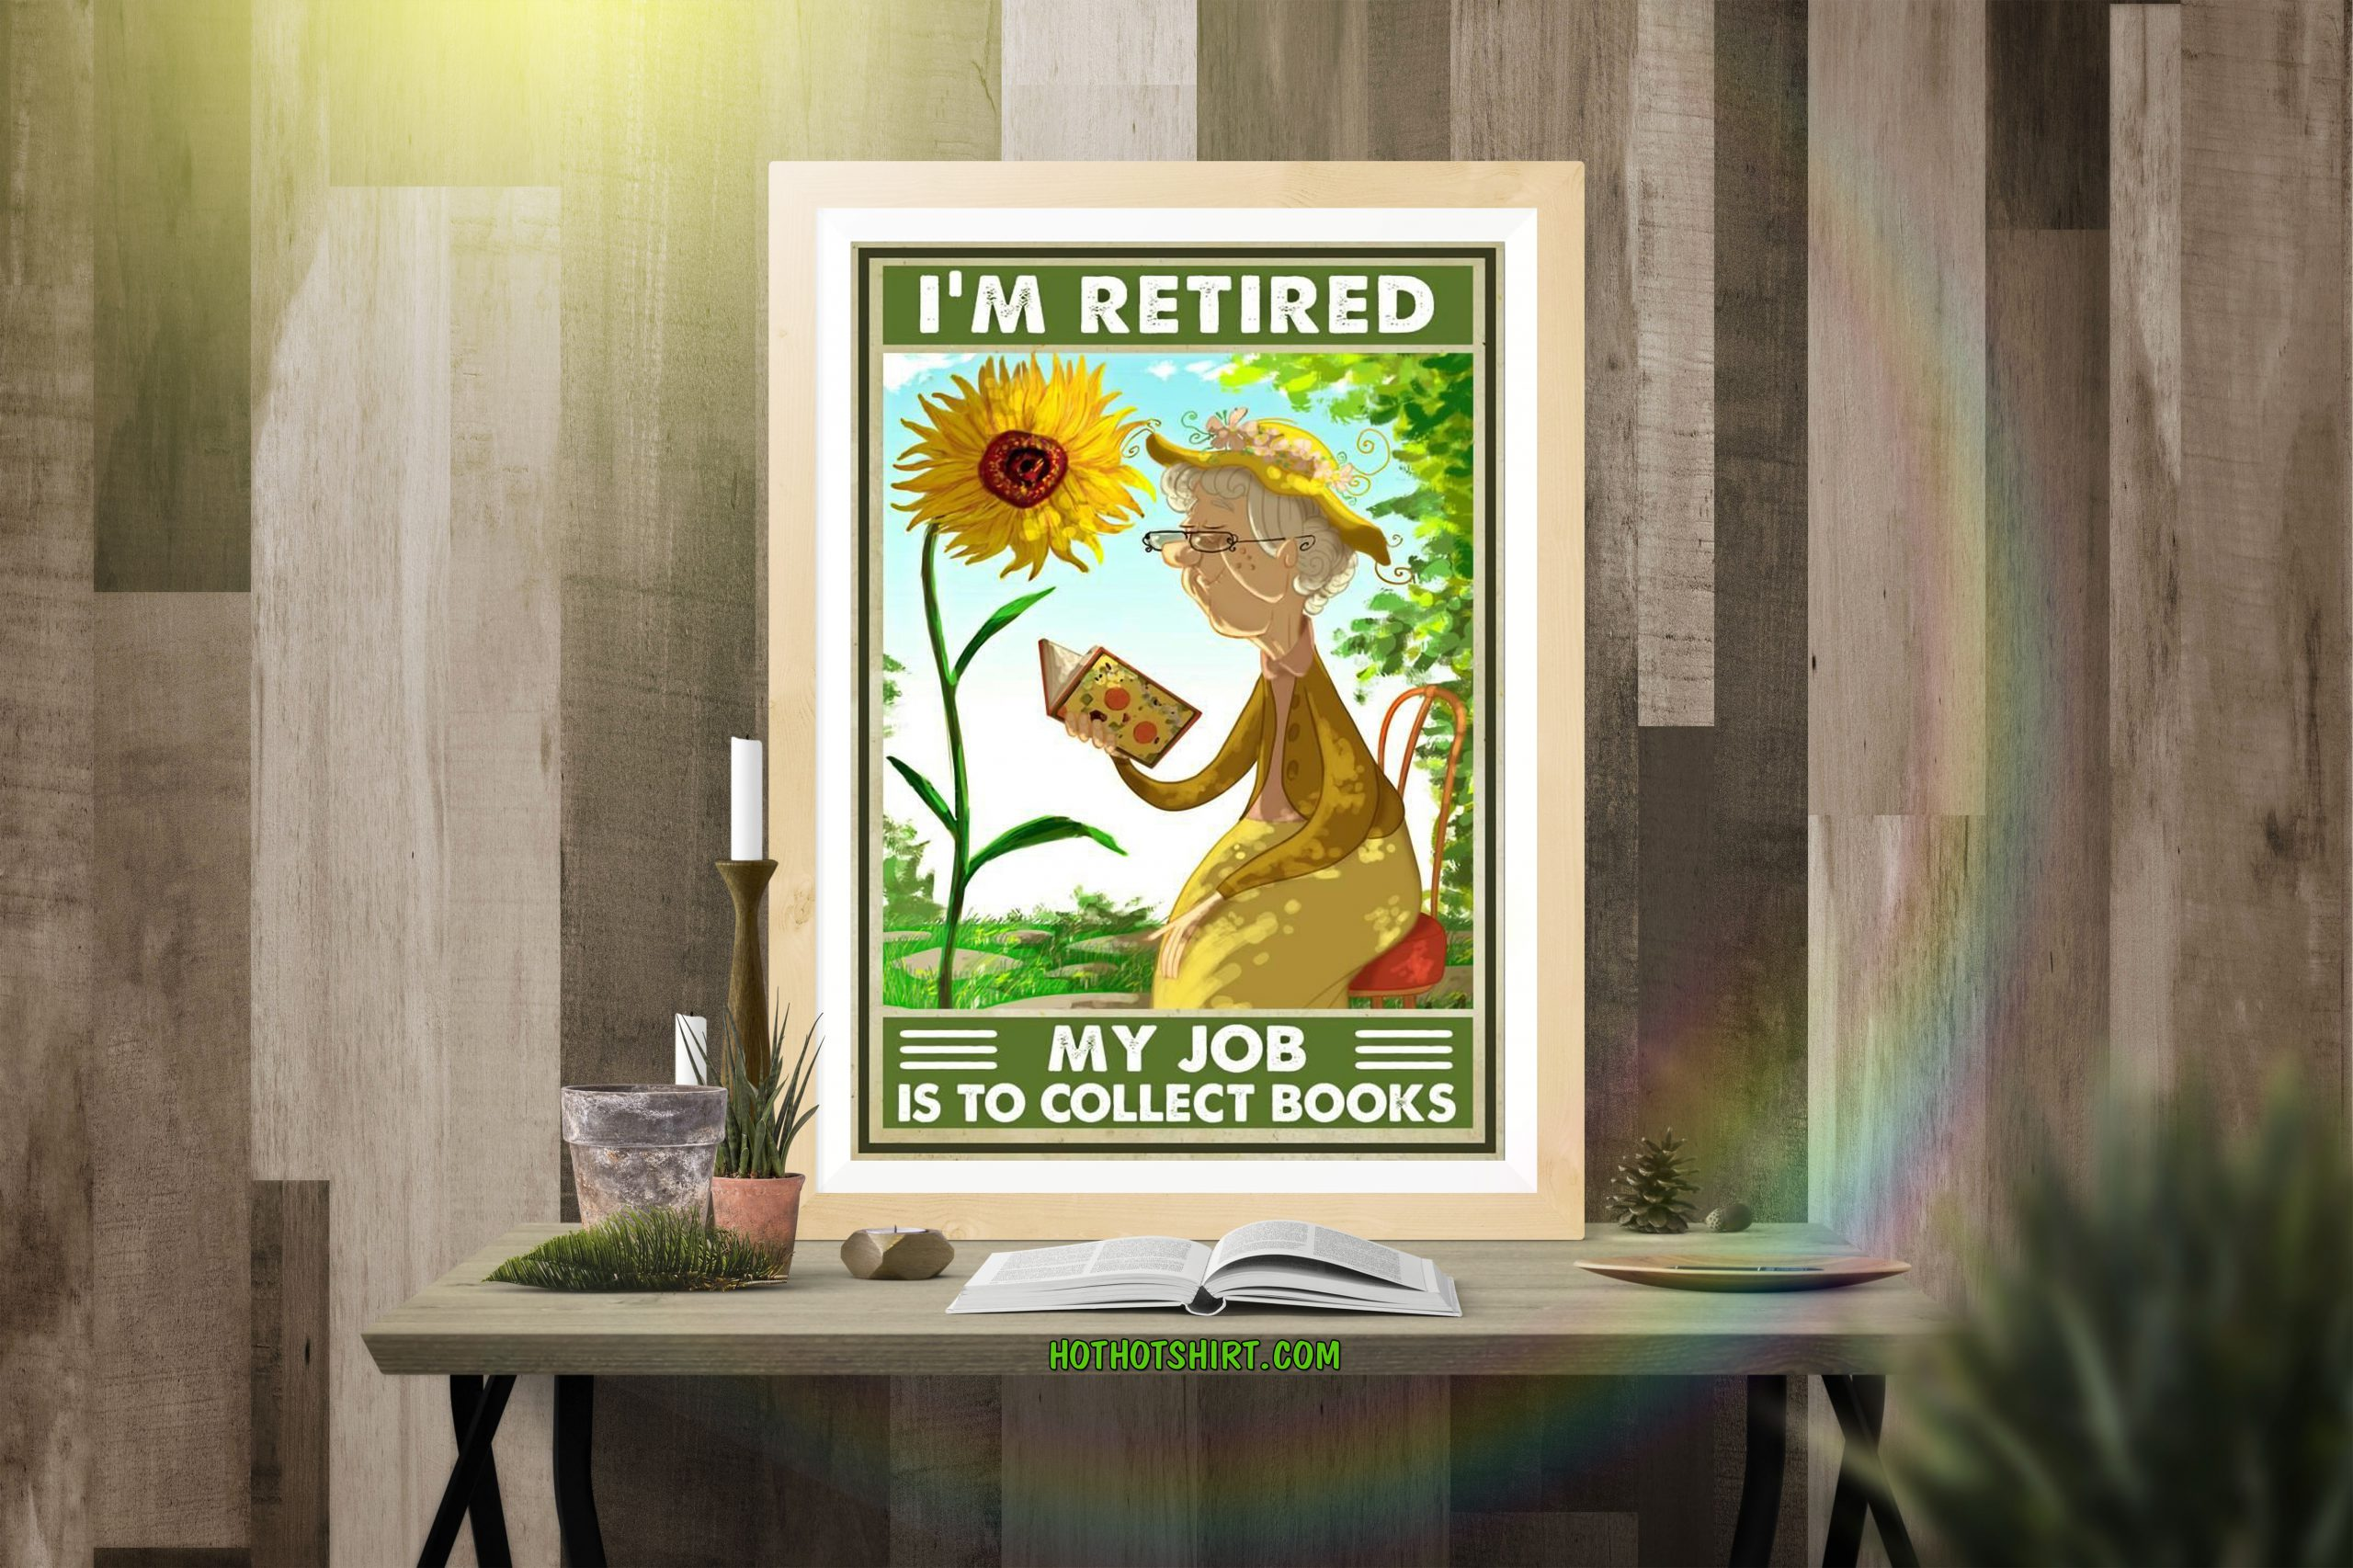 I'm Retired My job is to collect books poster 2